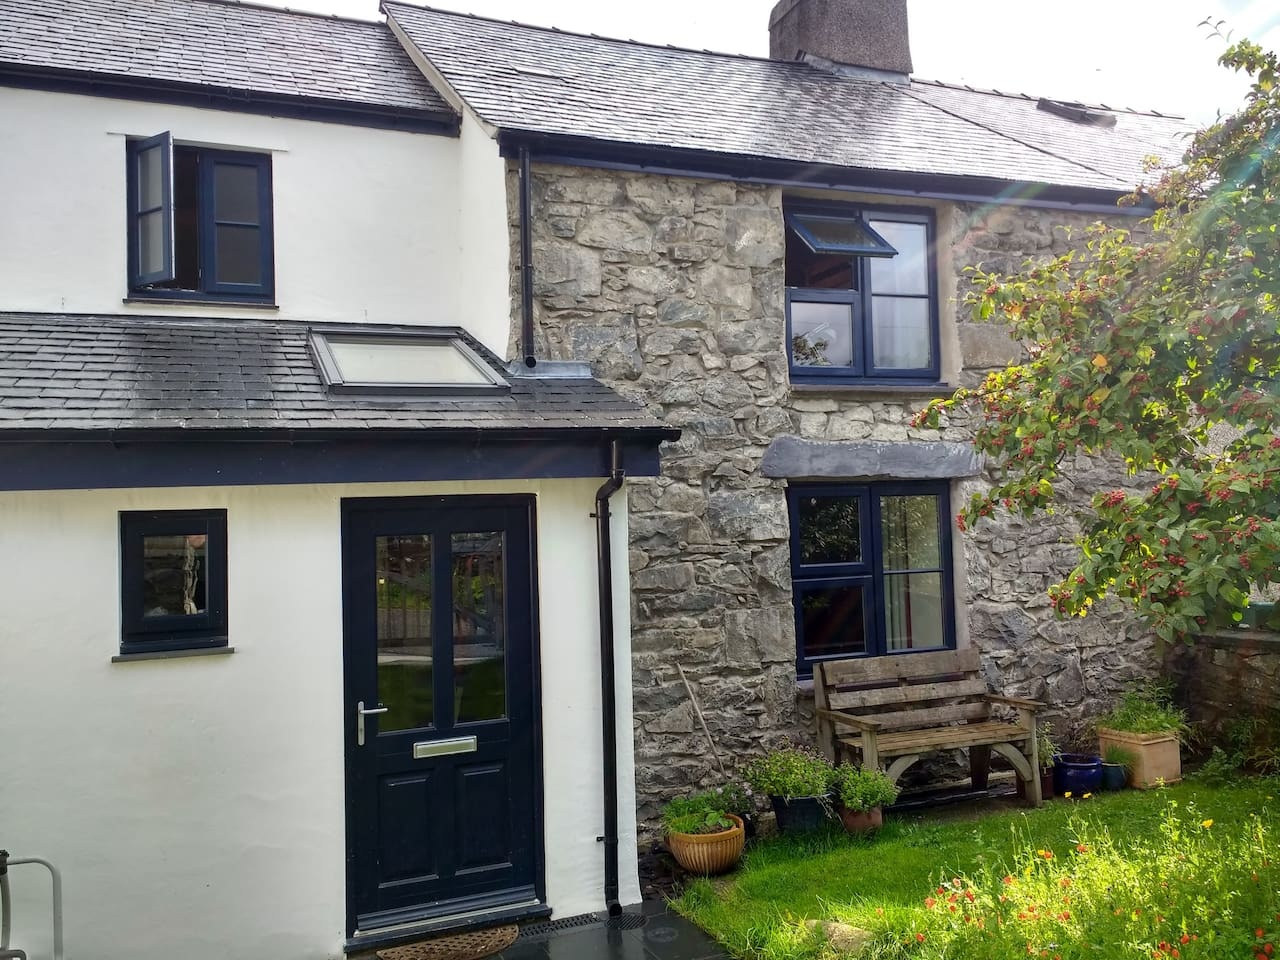 The house is a traditional stone cottage which has been extended